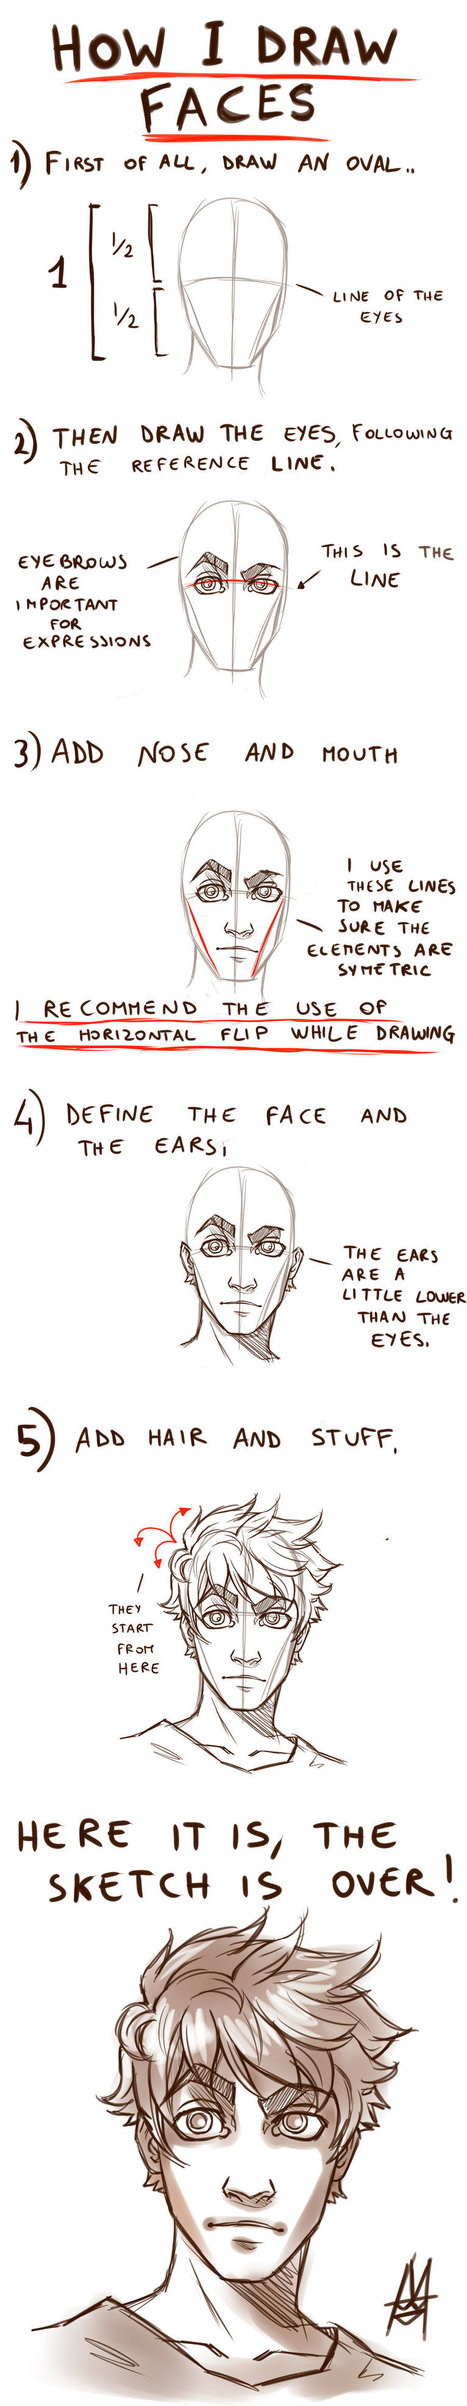 Tutorial HOW TO DRAW A FACE | Art | Scoop.it